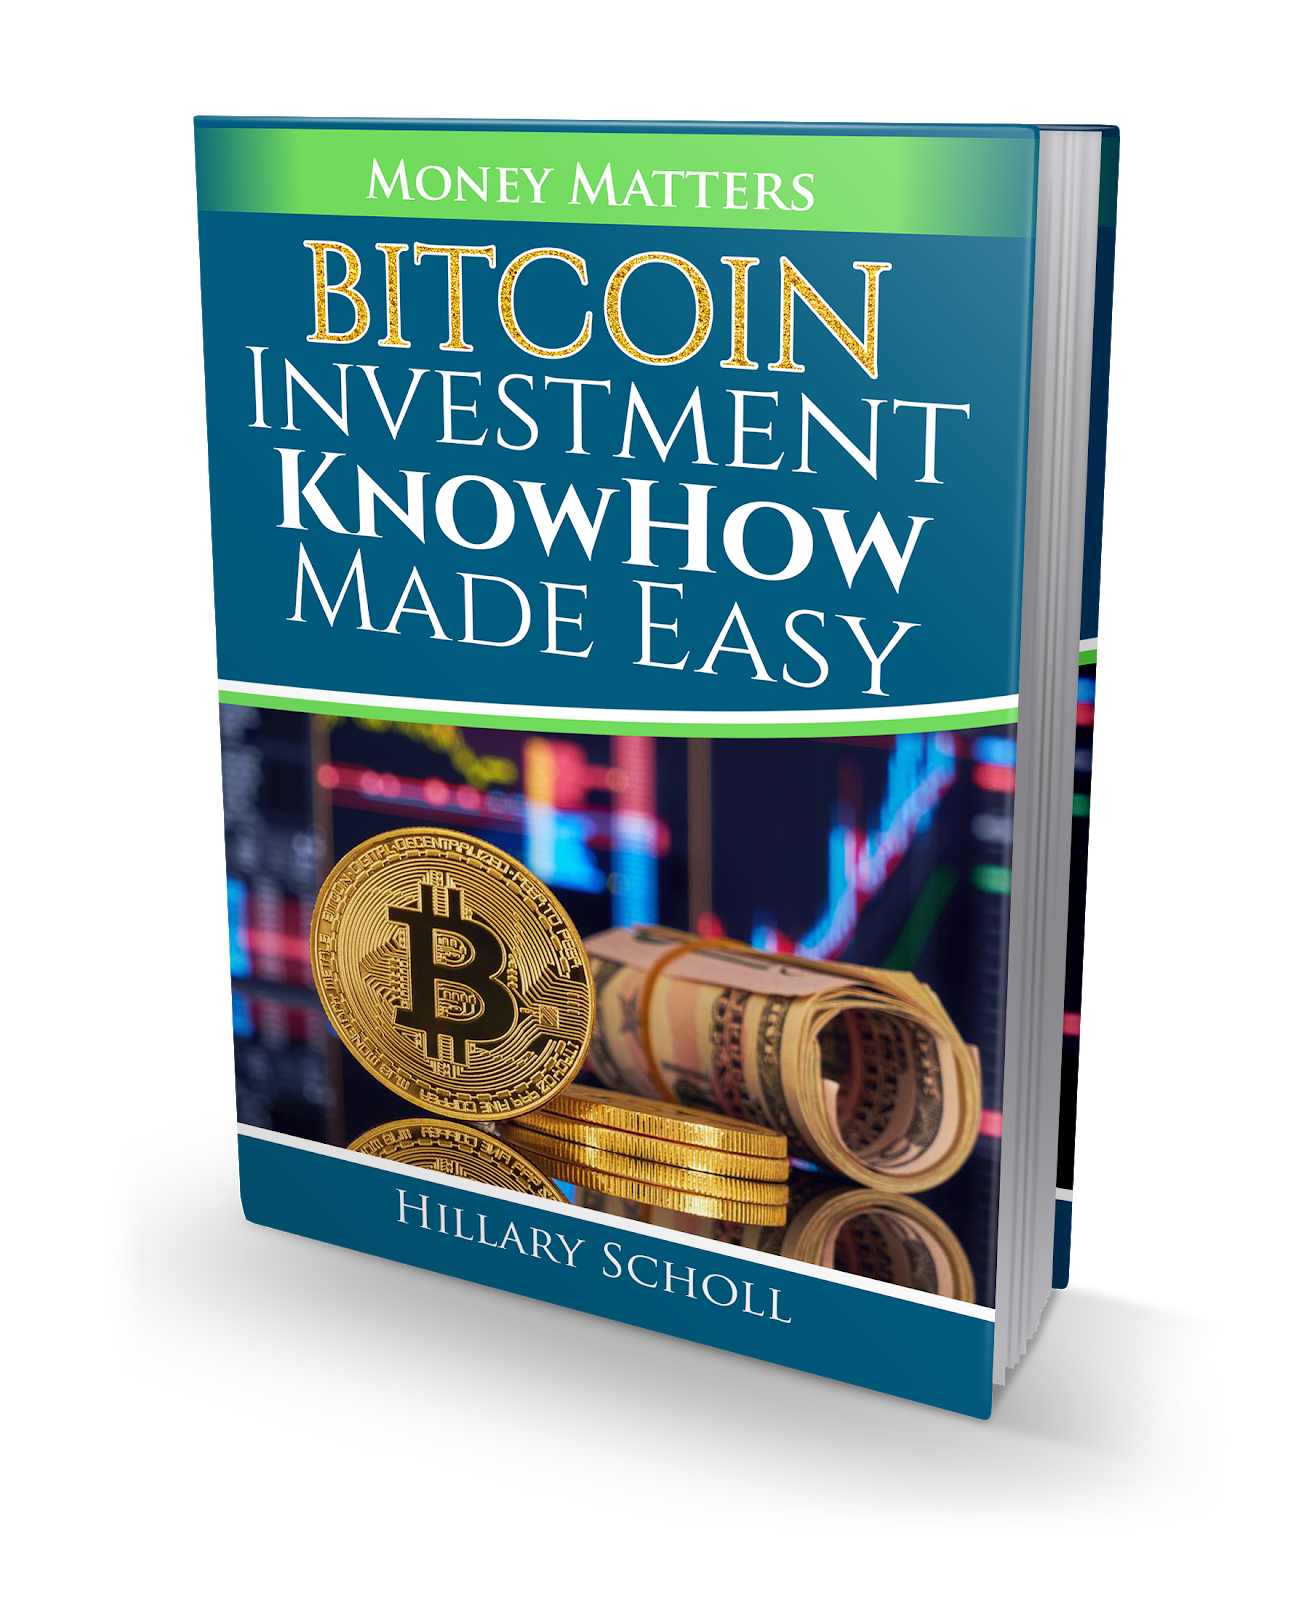 Crypto : Bitcoin Investment KnowHow Made Easy